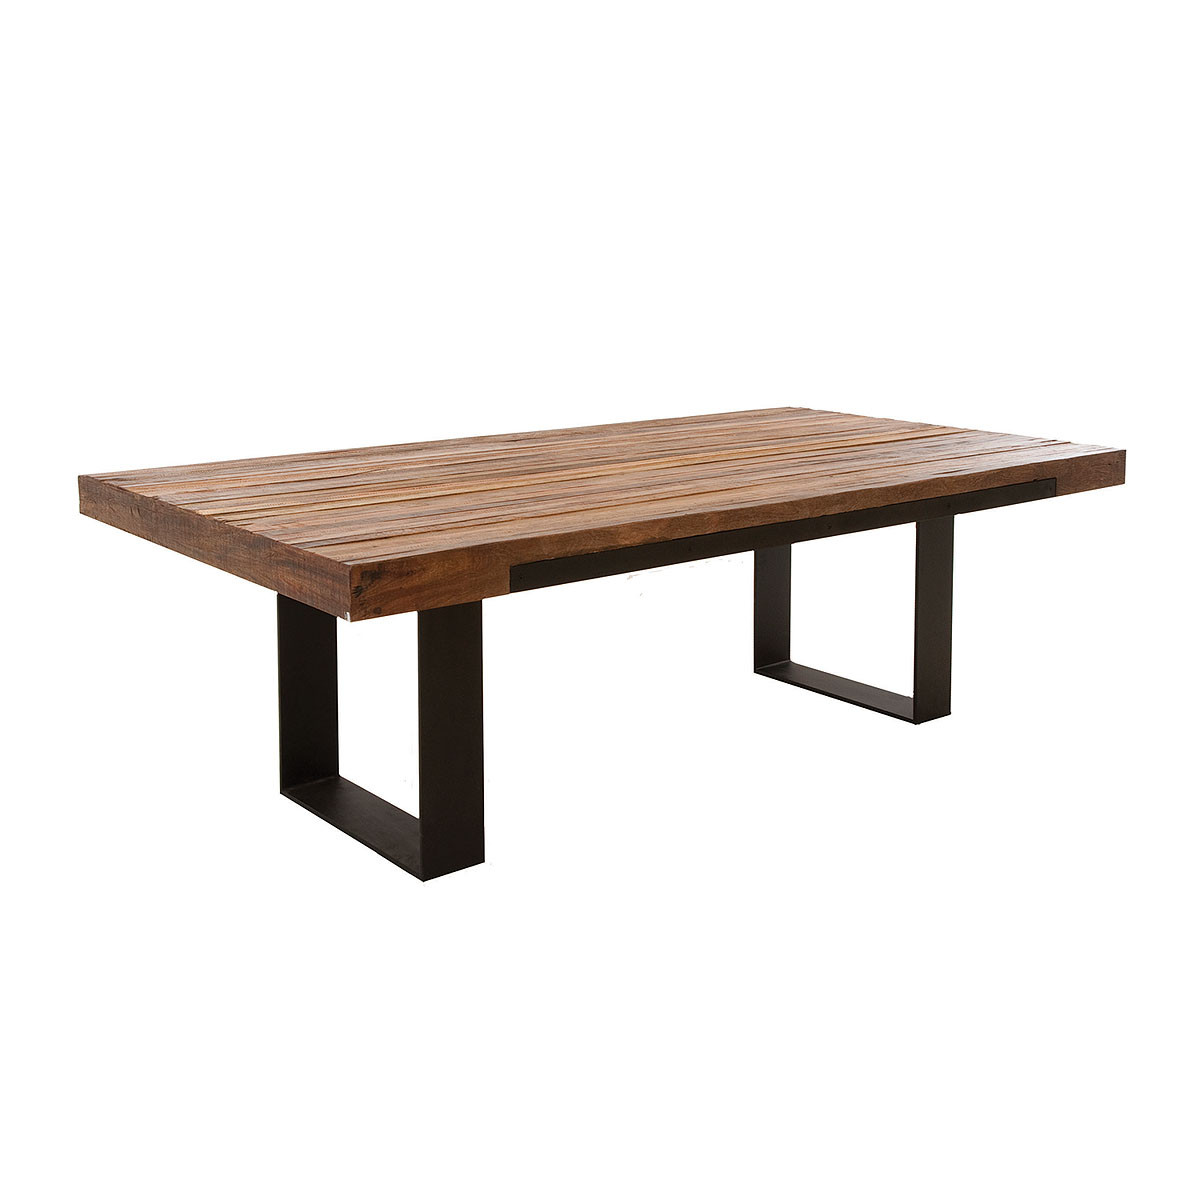 Pics Photos Wooden Dining Table